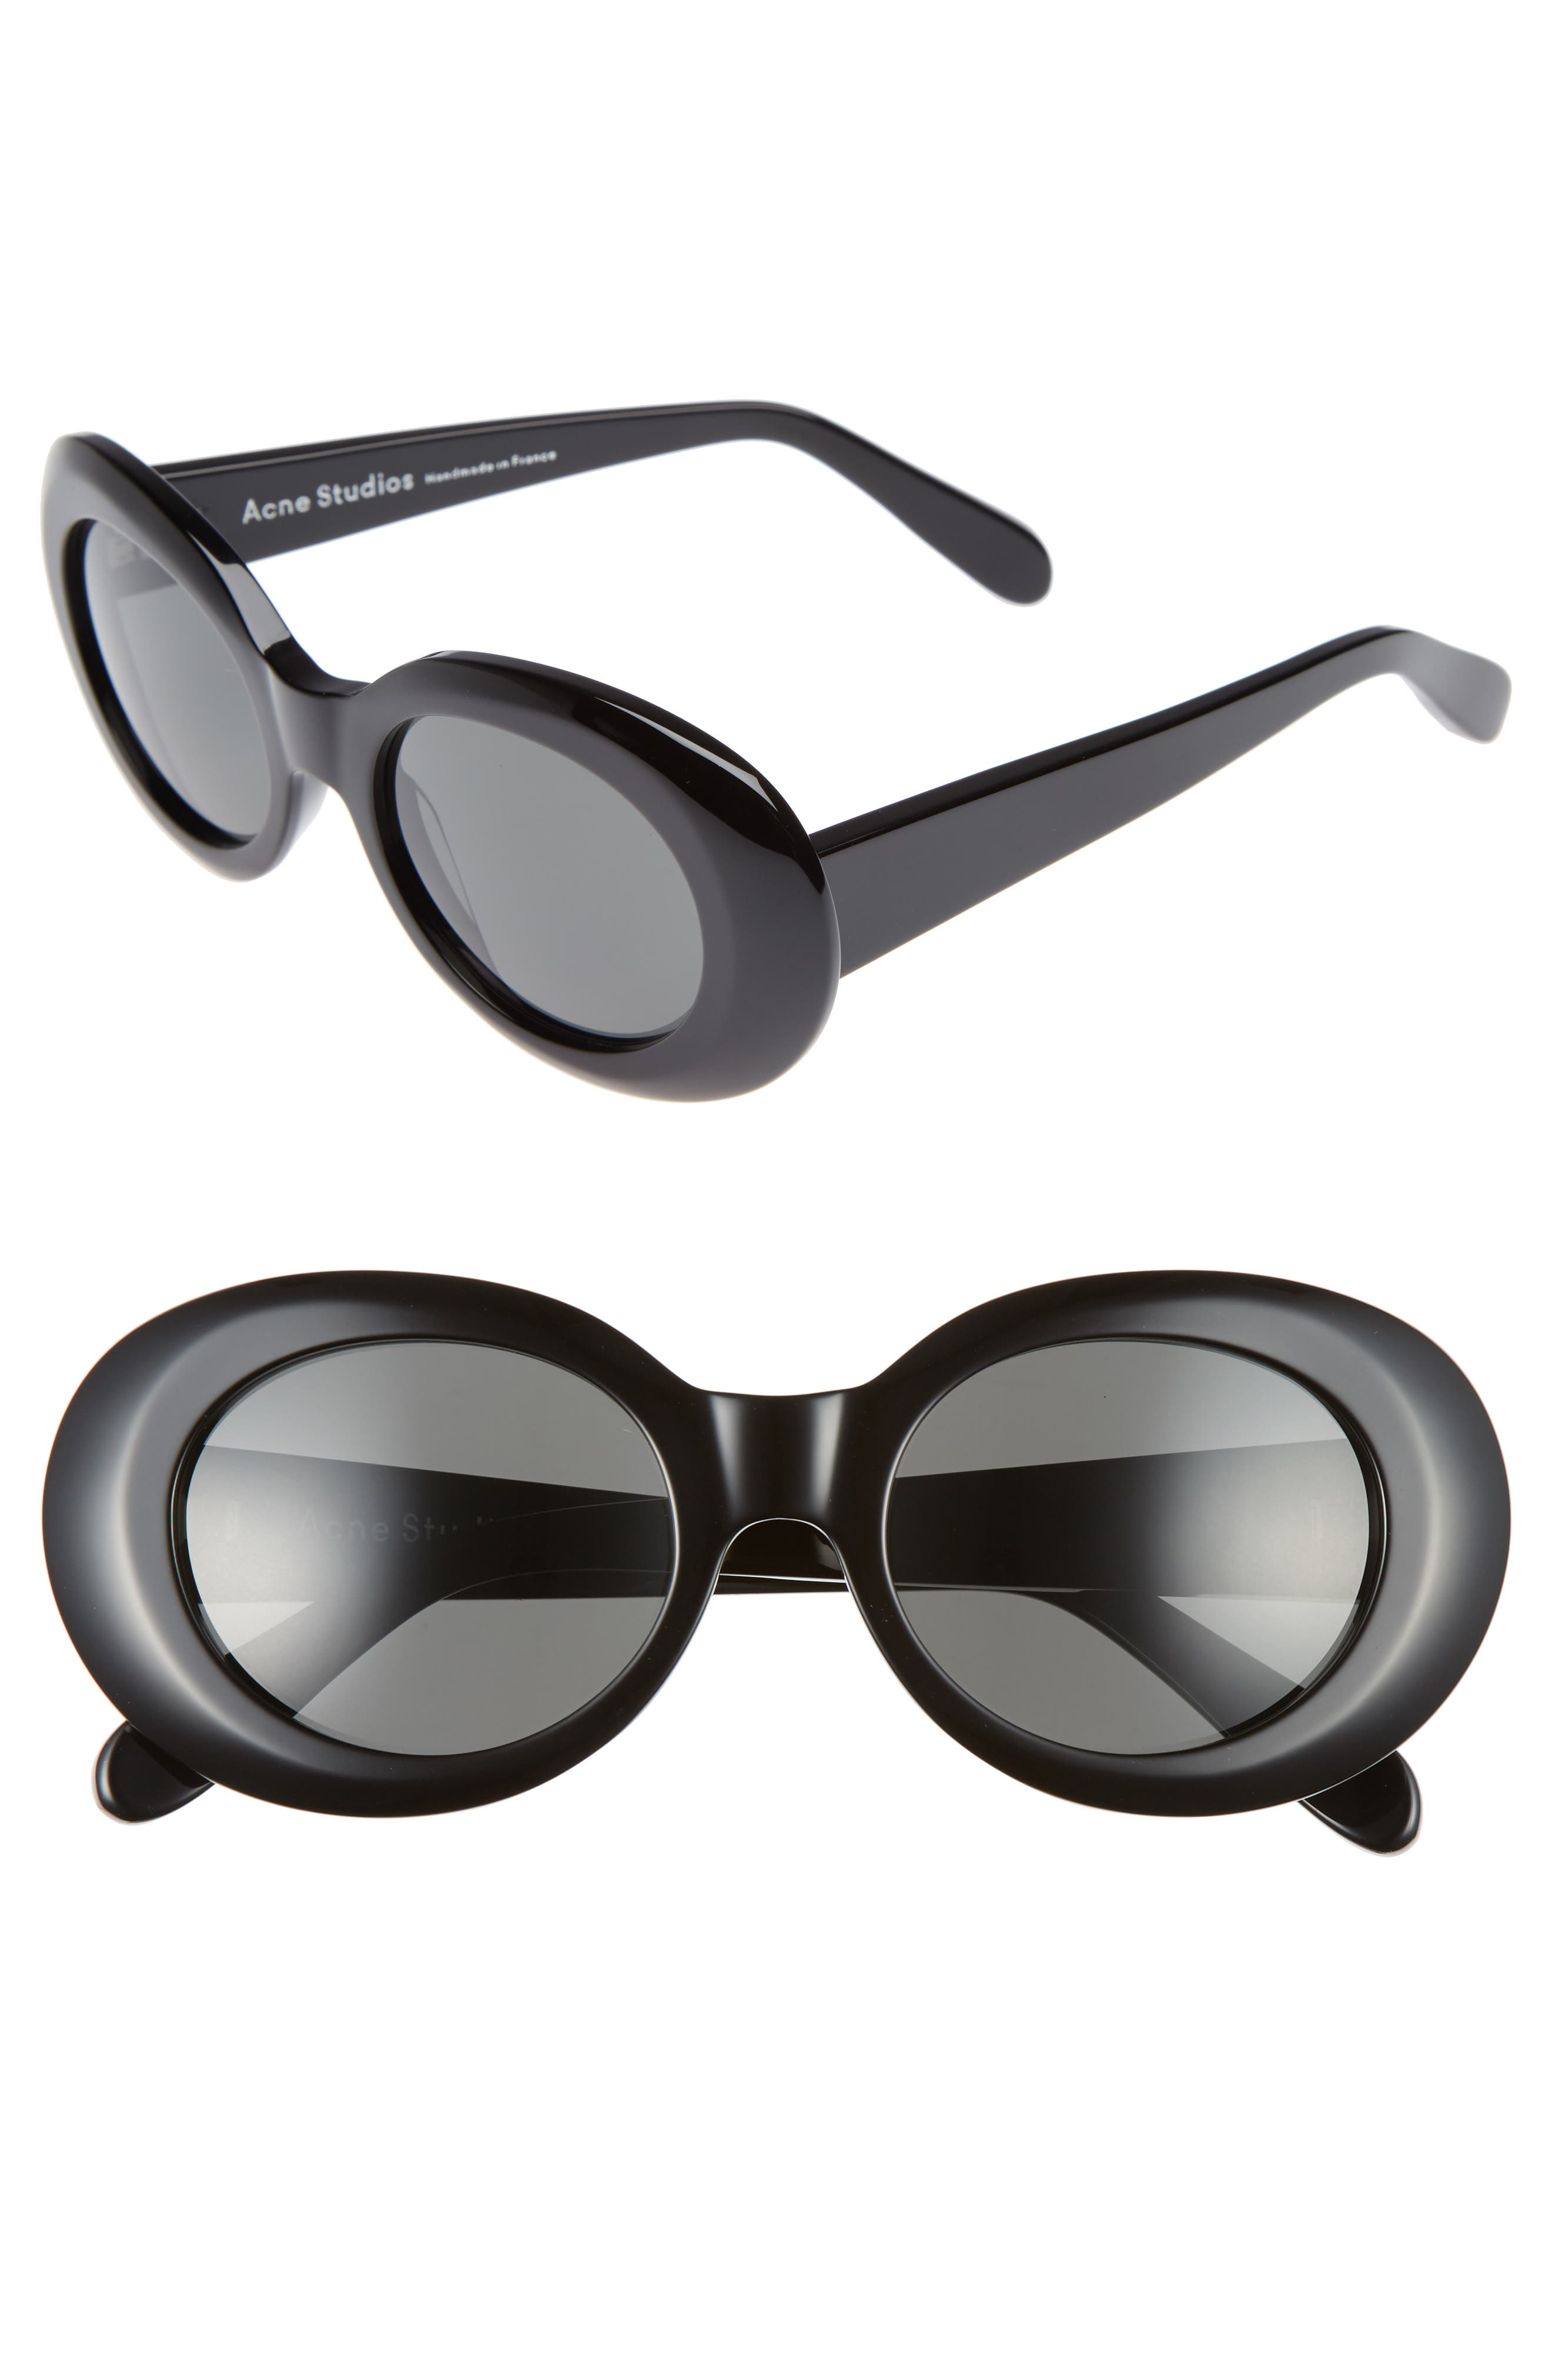 ACNE Studios Mustang 47mm Oval Sunglasses